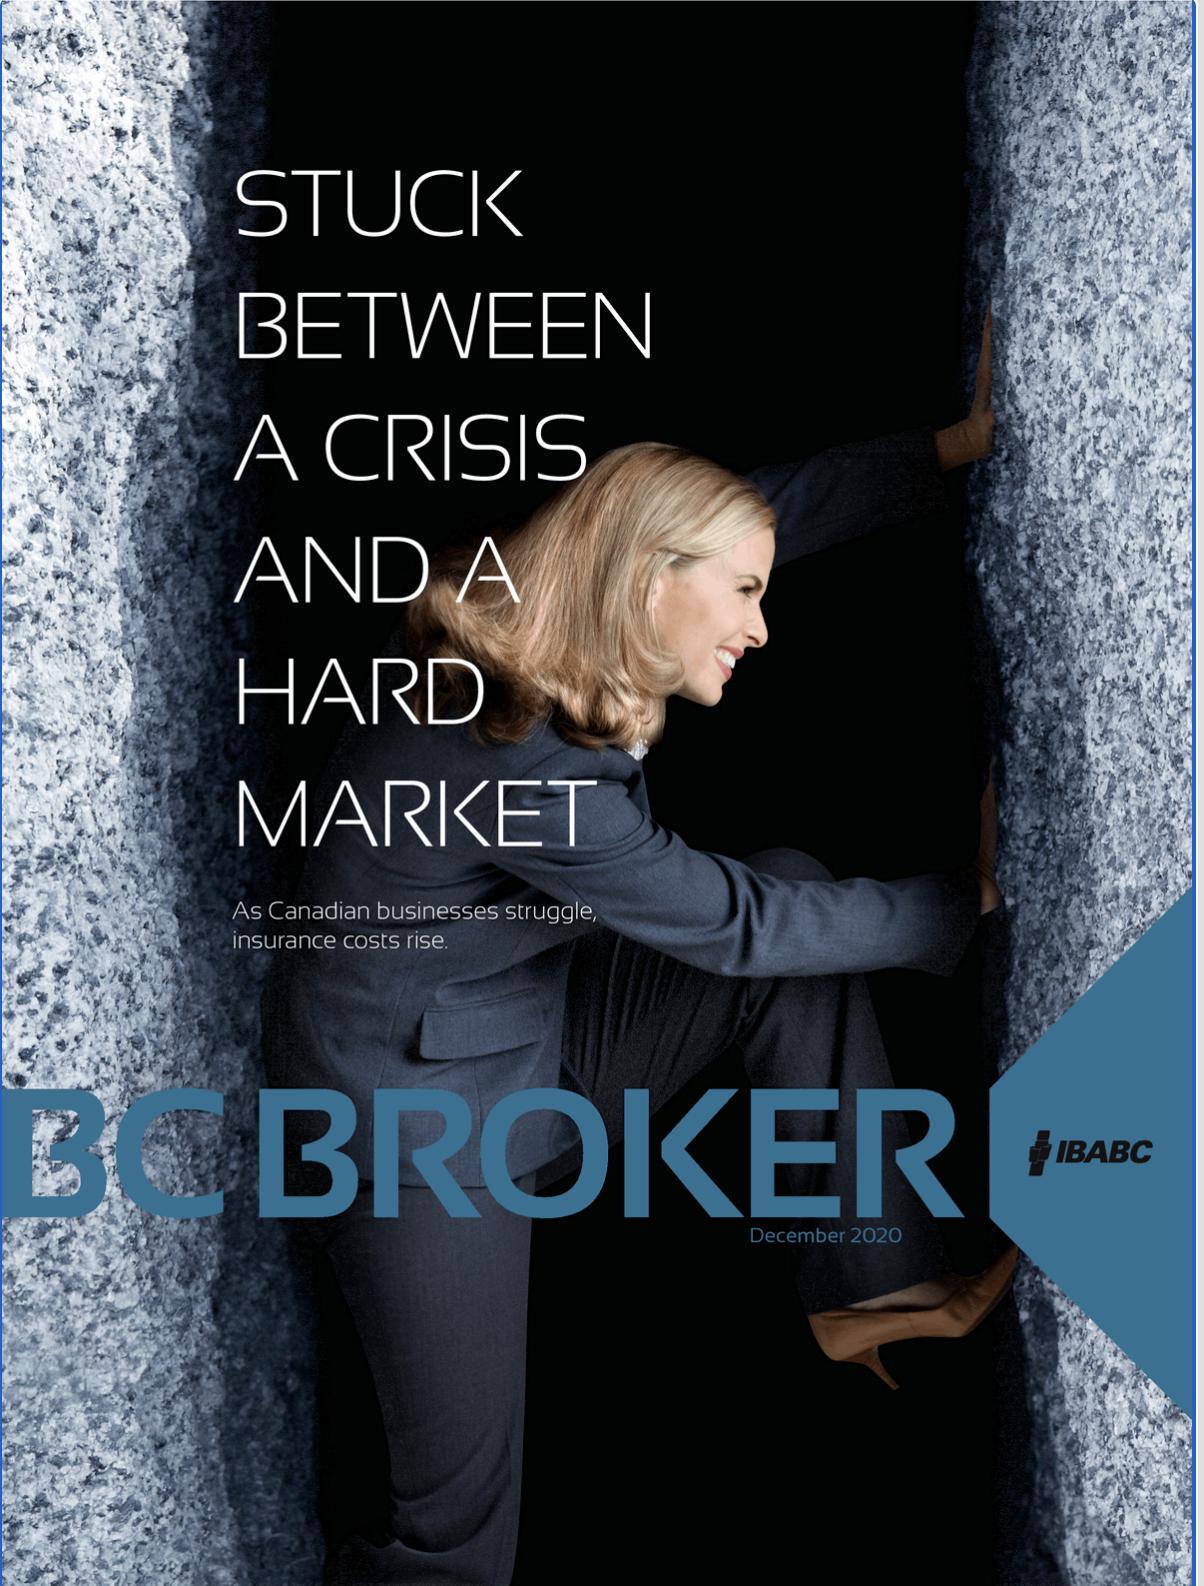 Stuck between a crisis and a hard market